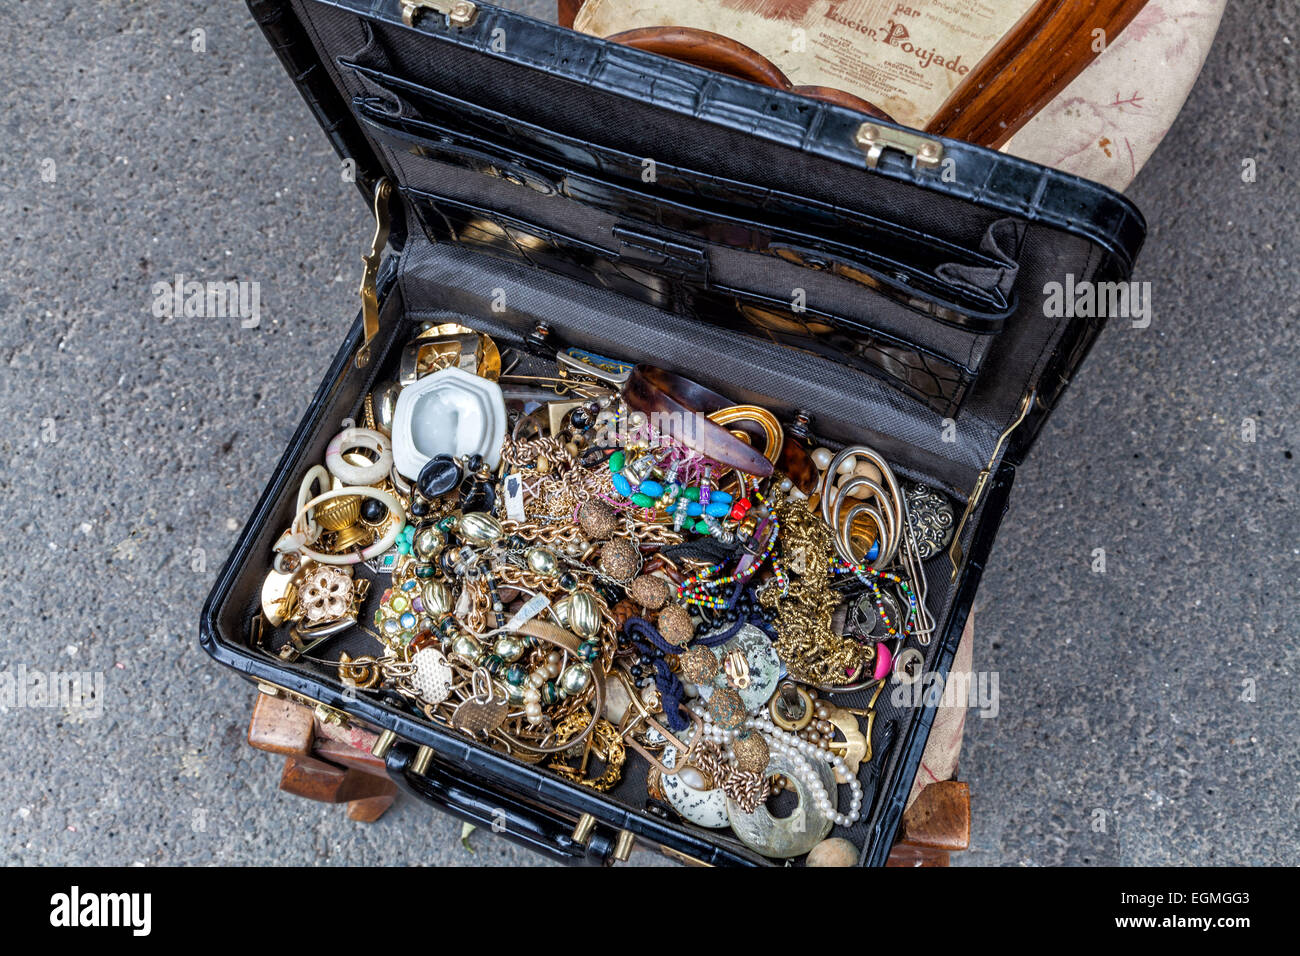 A suitcase full of treasure! Junk jewelery fills a suitcase at the street market. - Stock Image